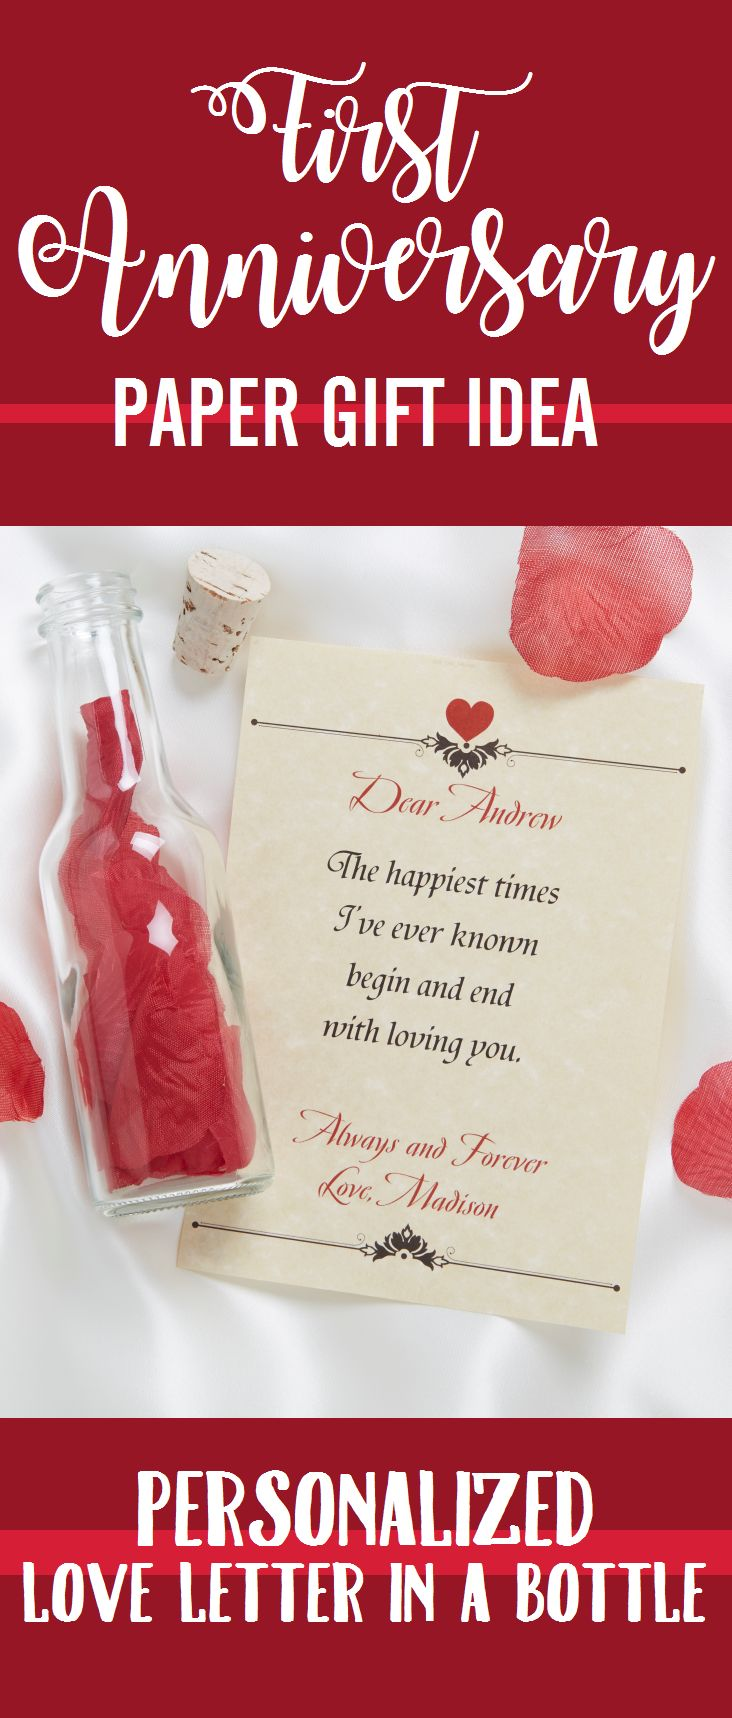 Great First Anniversary Gift idea! The traditional gift is paper so this Personalized Love Letter in a Bottle is perfect! It's so romantic, sweet and affordable! LOVE IT!